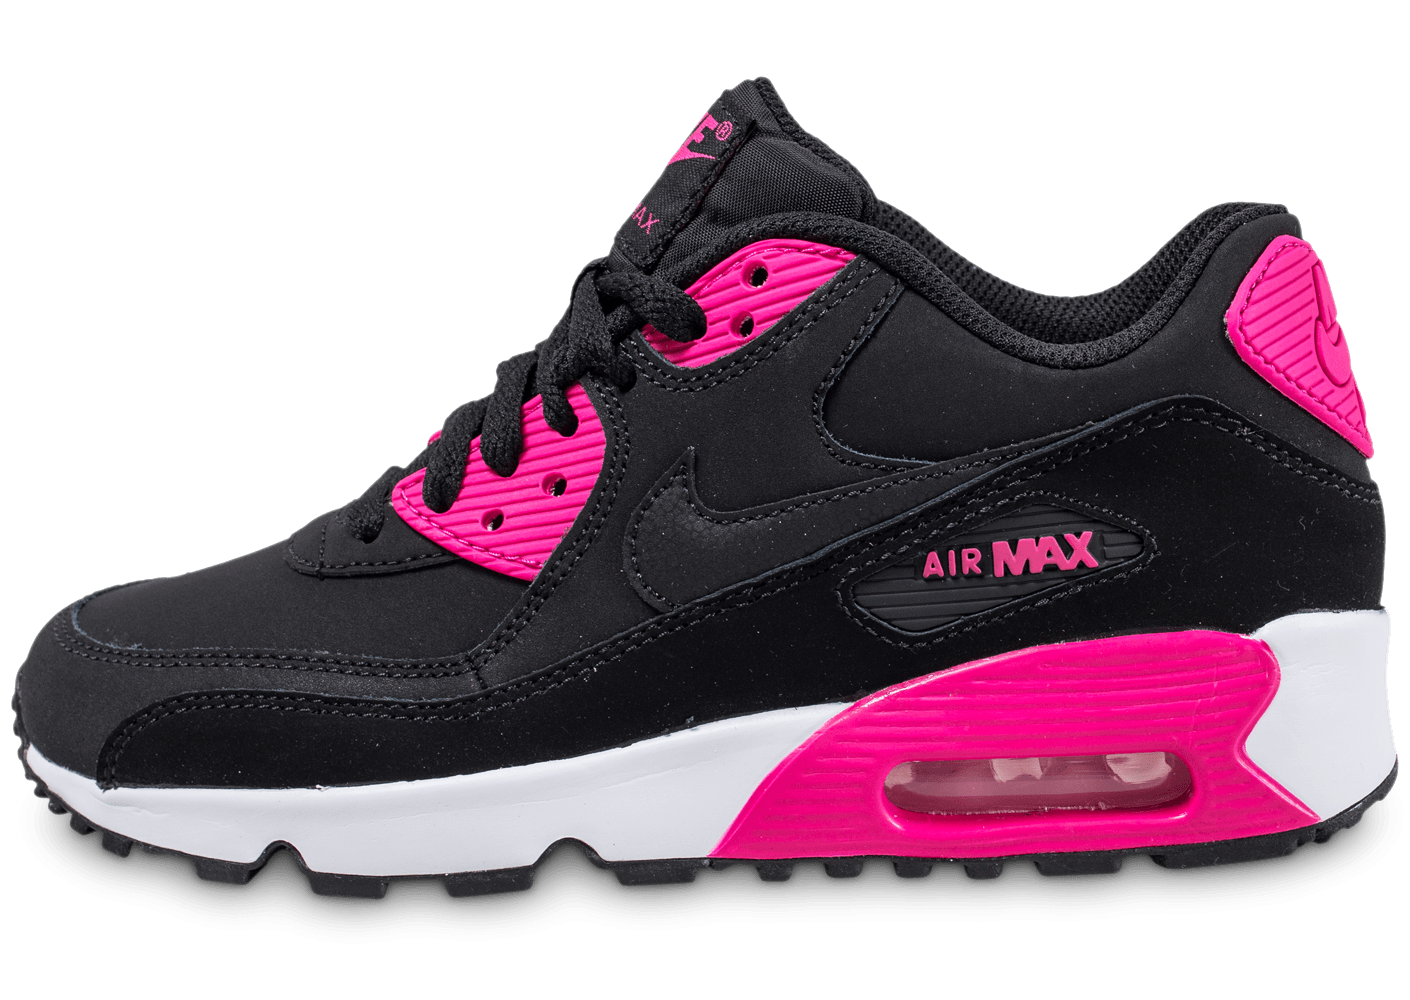 nike air max 90 ltr junior noire et rose chaussures enfant chausport. Black Bedroom Furniture Sets. Home Design Ideas